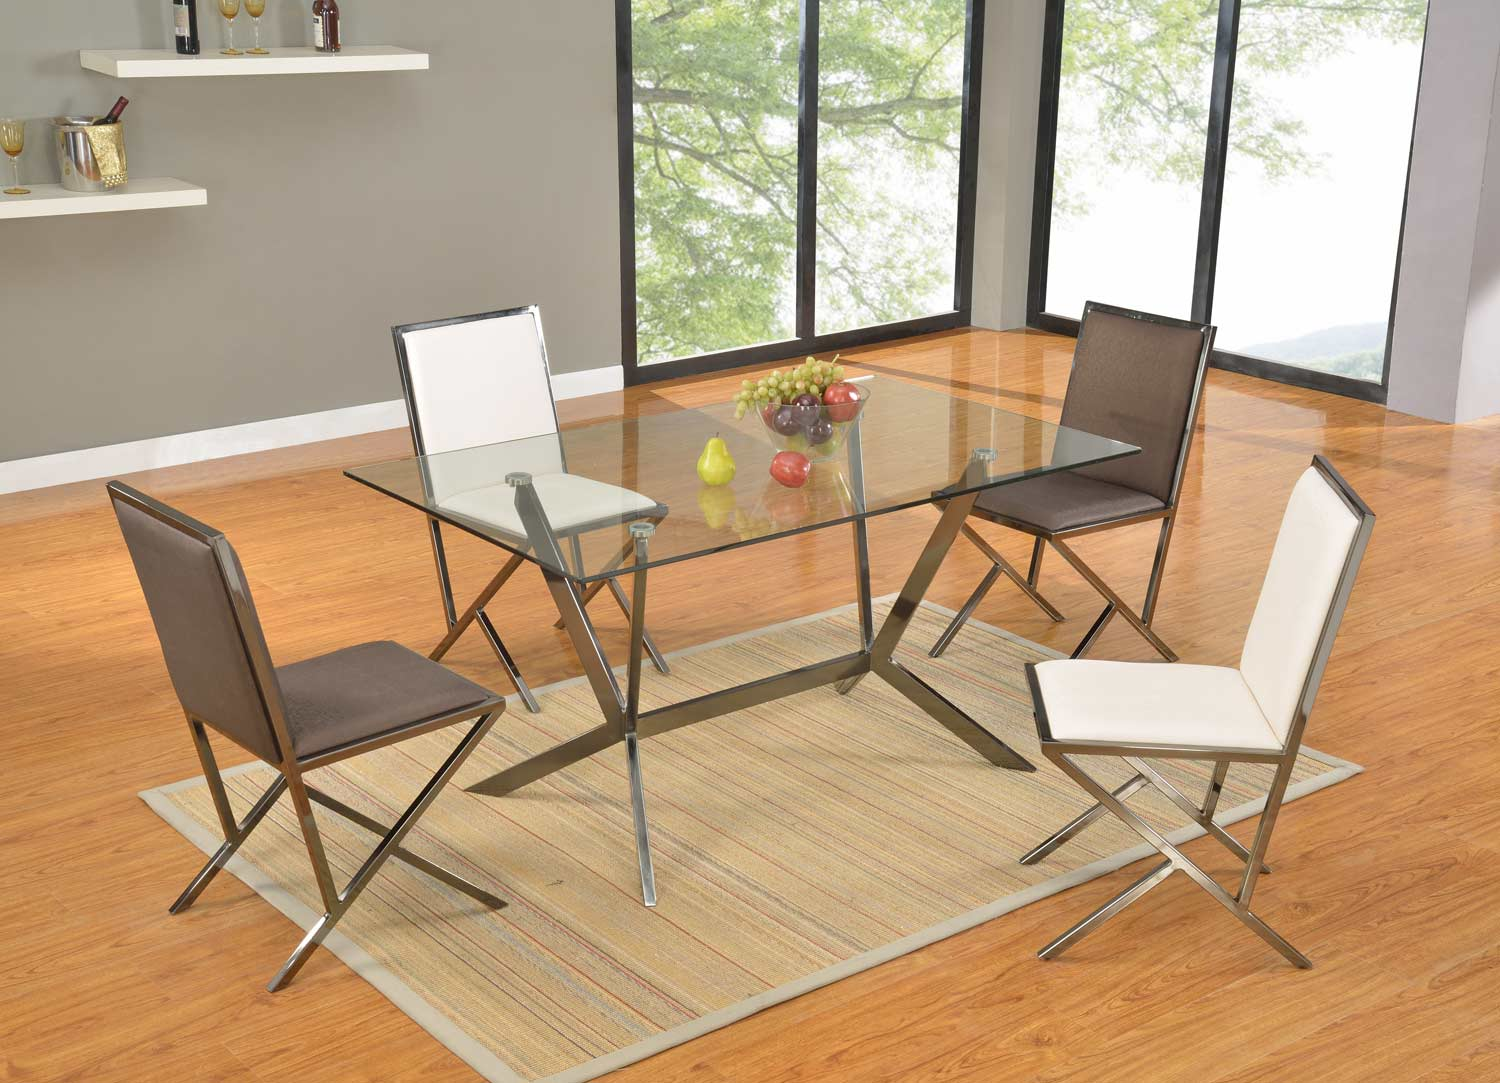 Chintaly Imports Lauren 10mm 5-Piece Dining Set - Clear Glass/Gloss Black Nickel